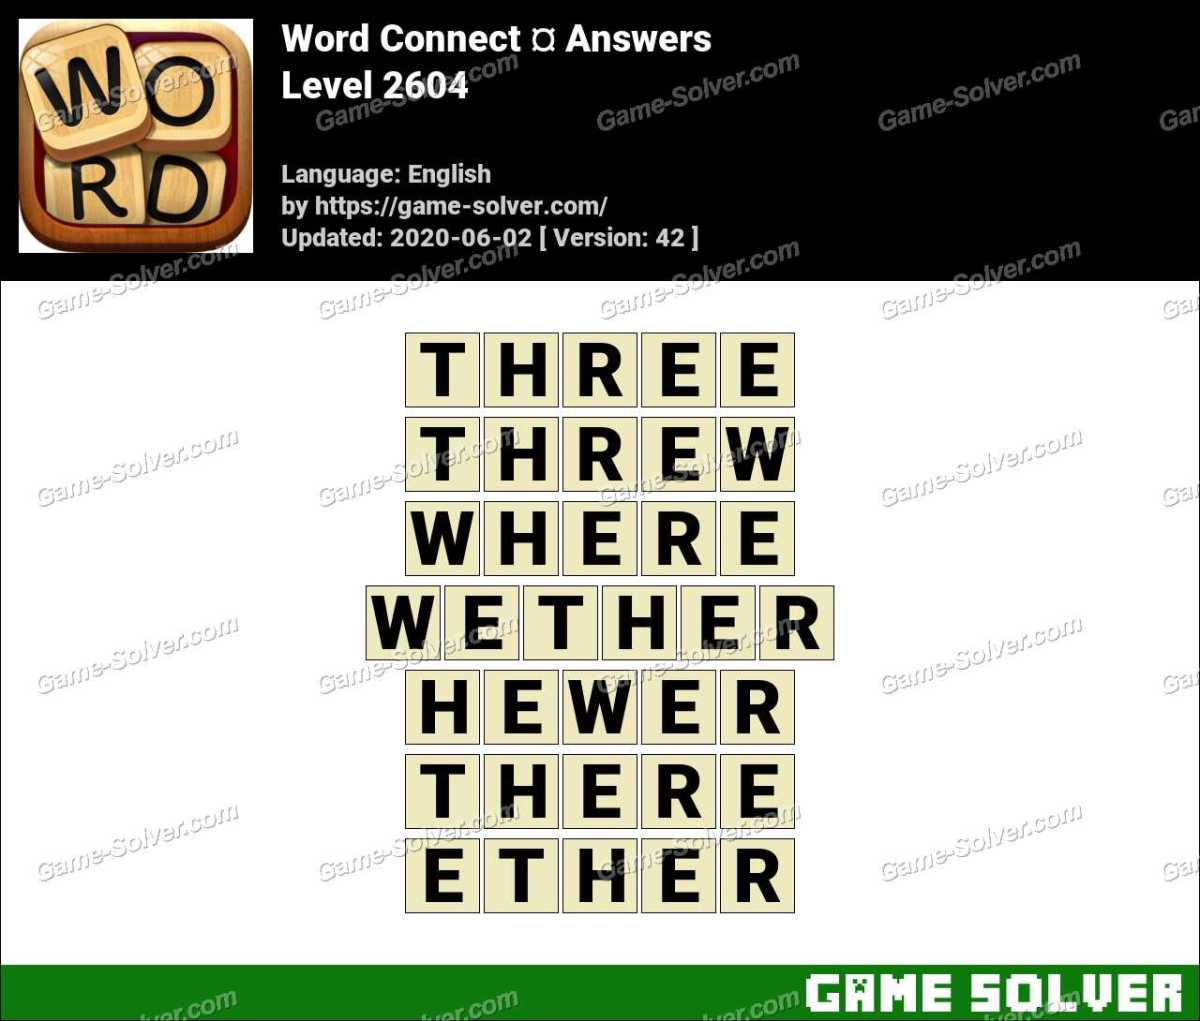 Word Connect Level 2604 Answers